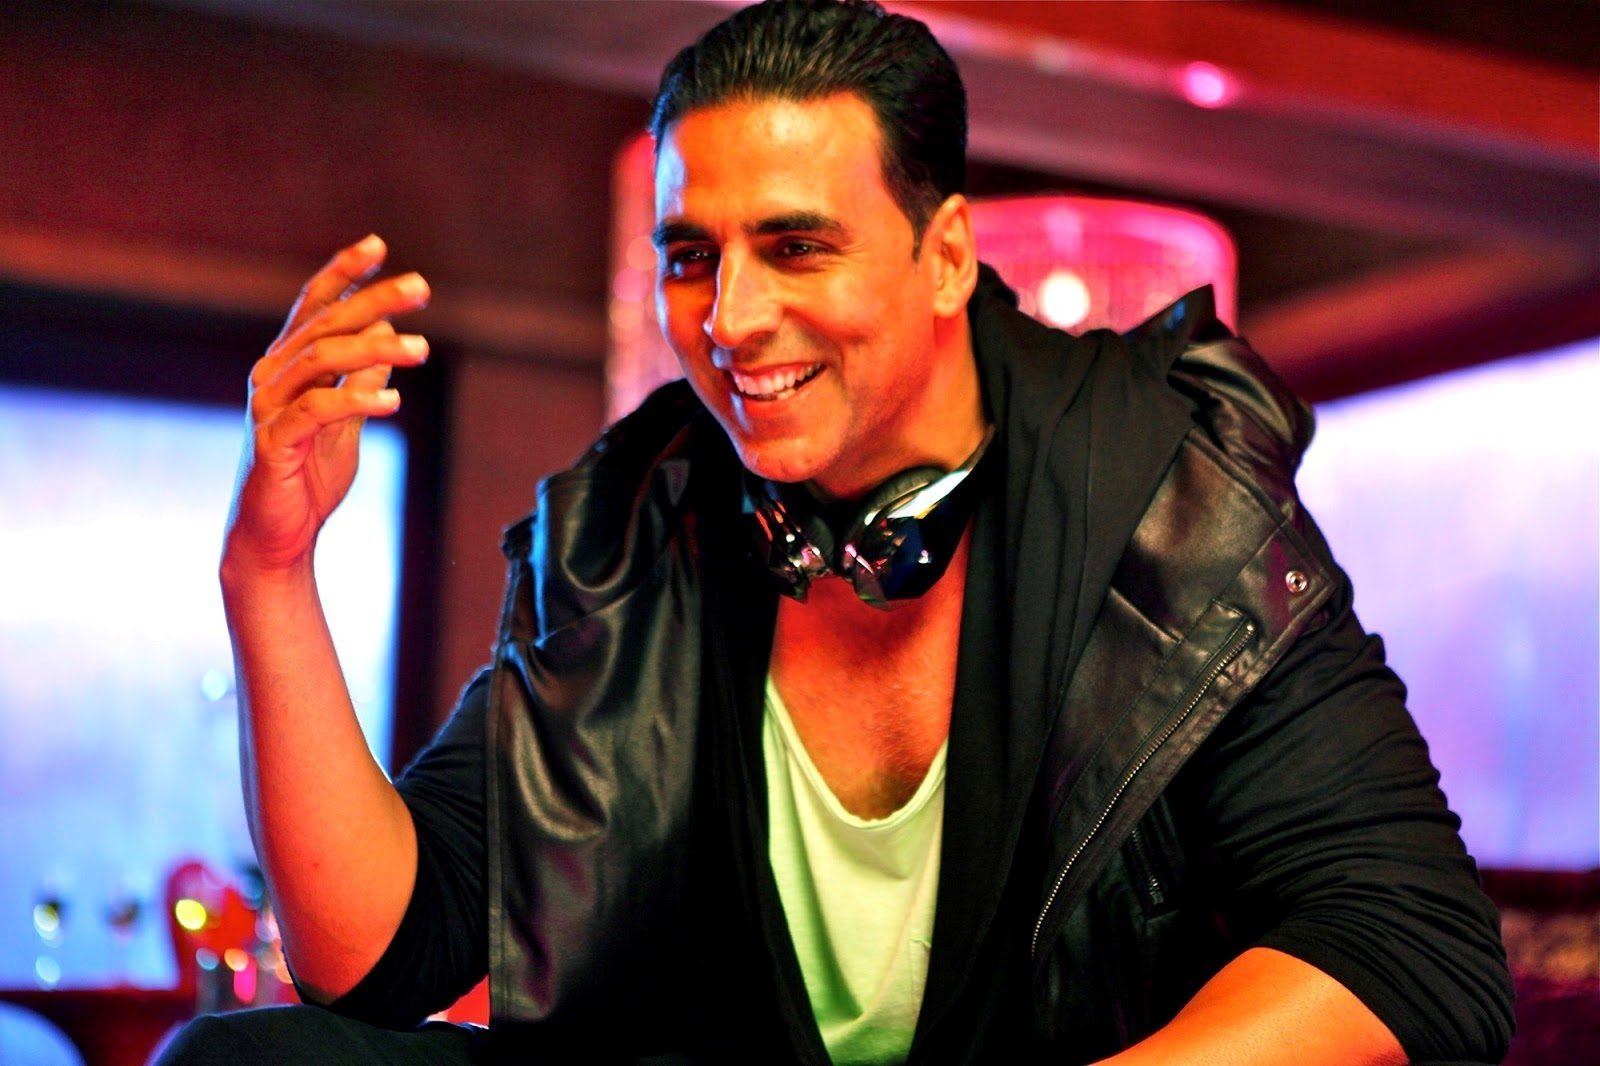 hd wallpaper free 4u: akshay kumar hd wallpapers free downlaod